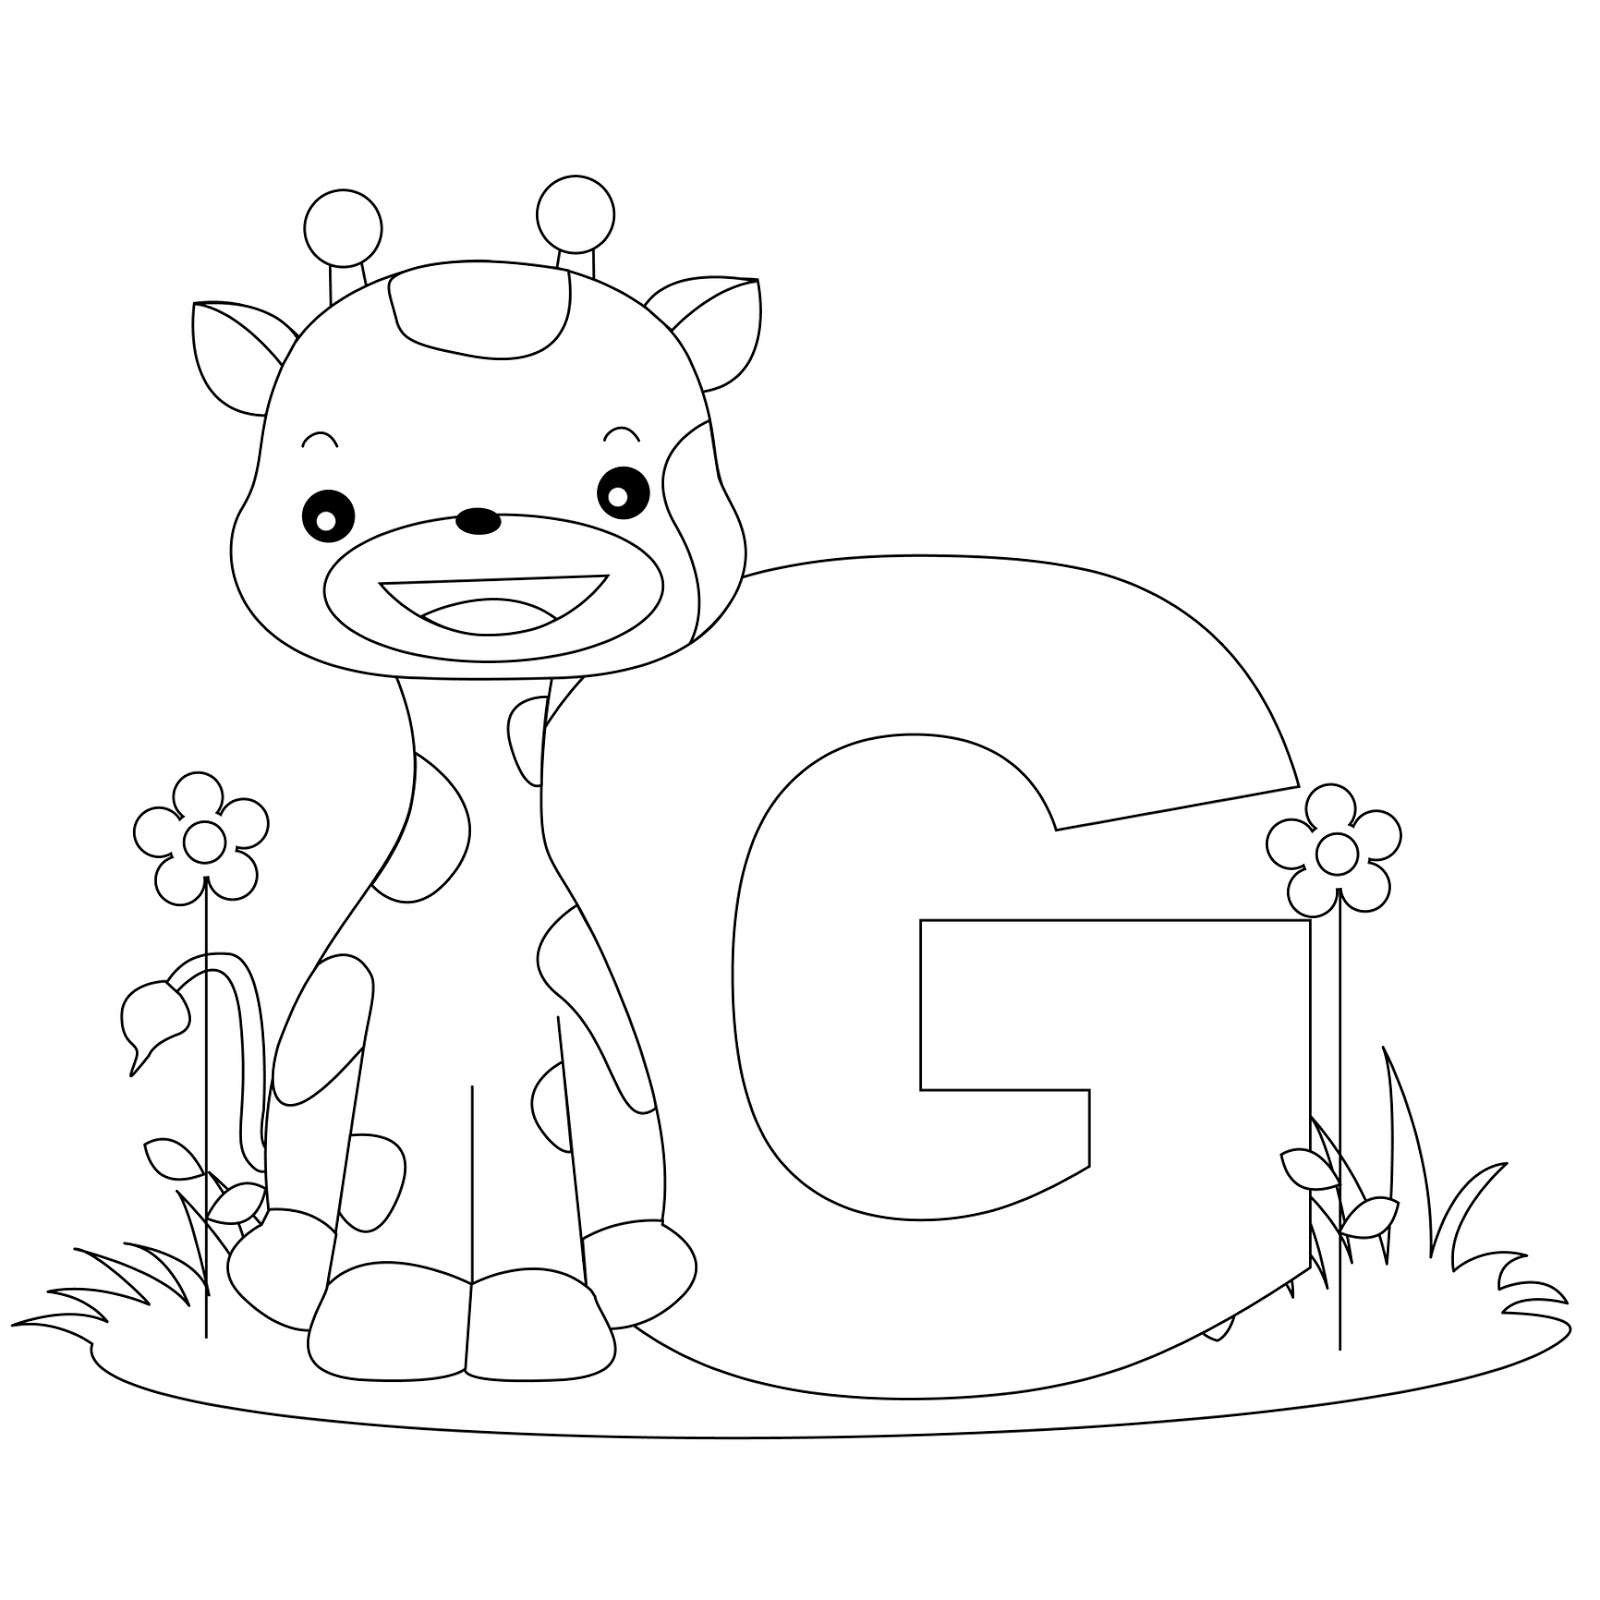 g coloring pages print - photo #24